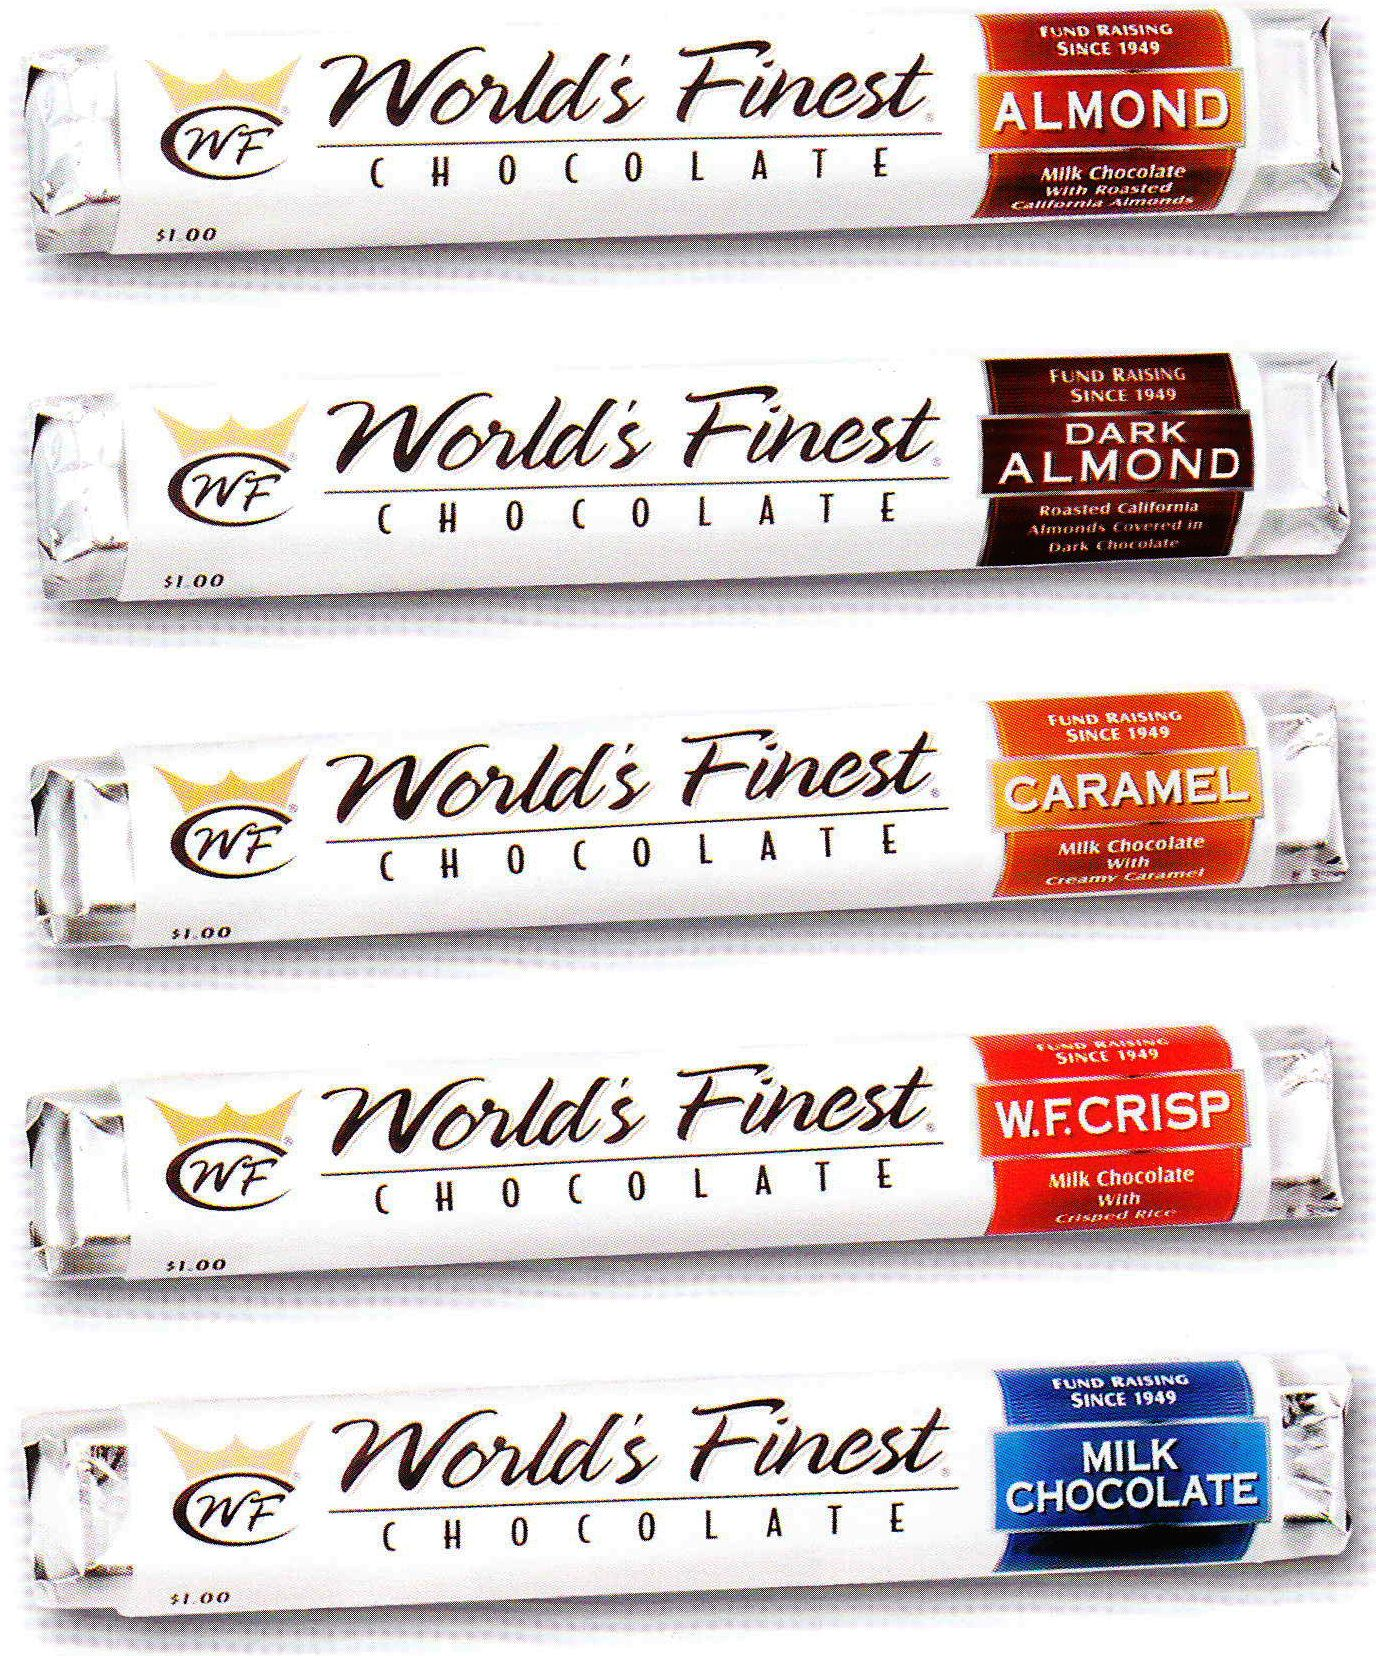 World's Finest Chocolate, founded 1949 (Chicago Pin of the Day, 11 ...